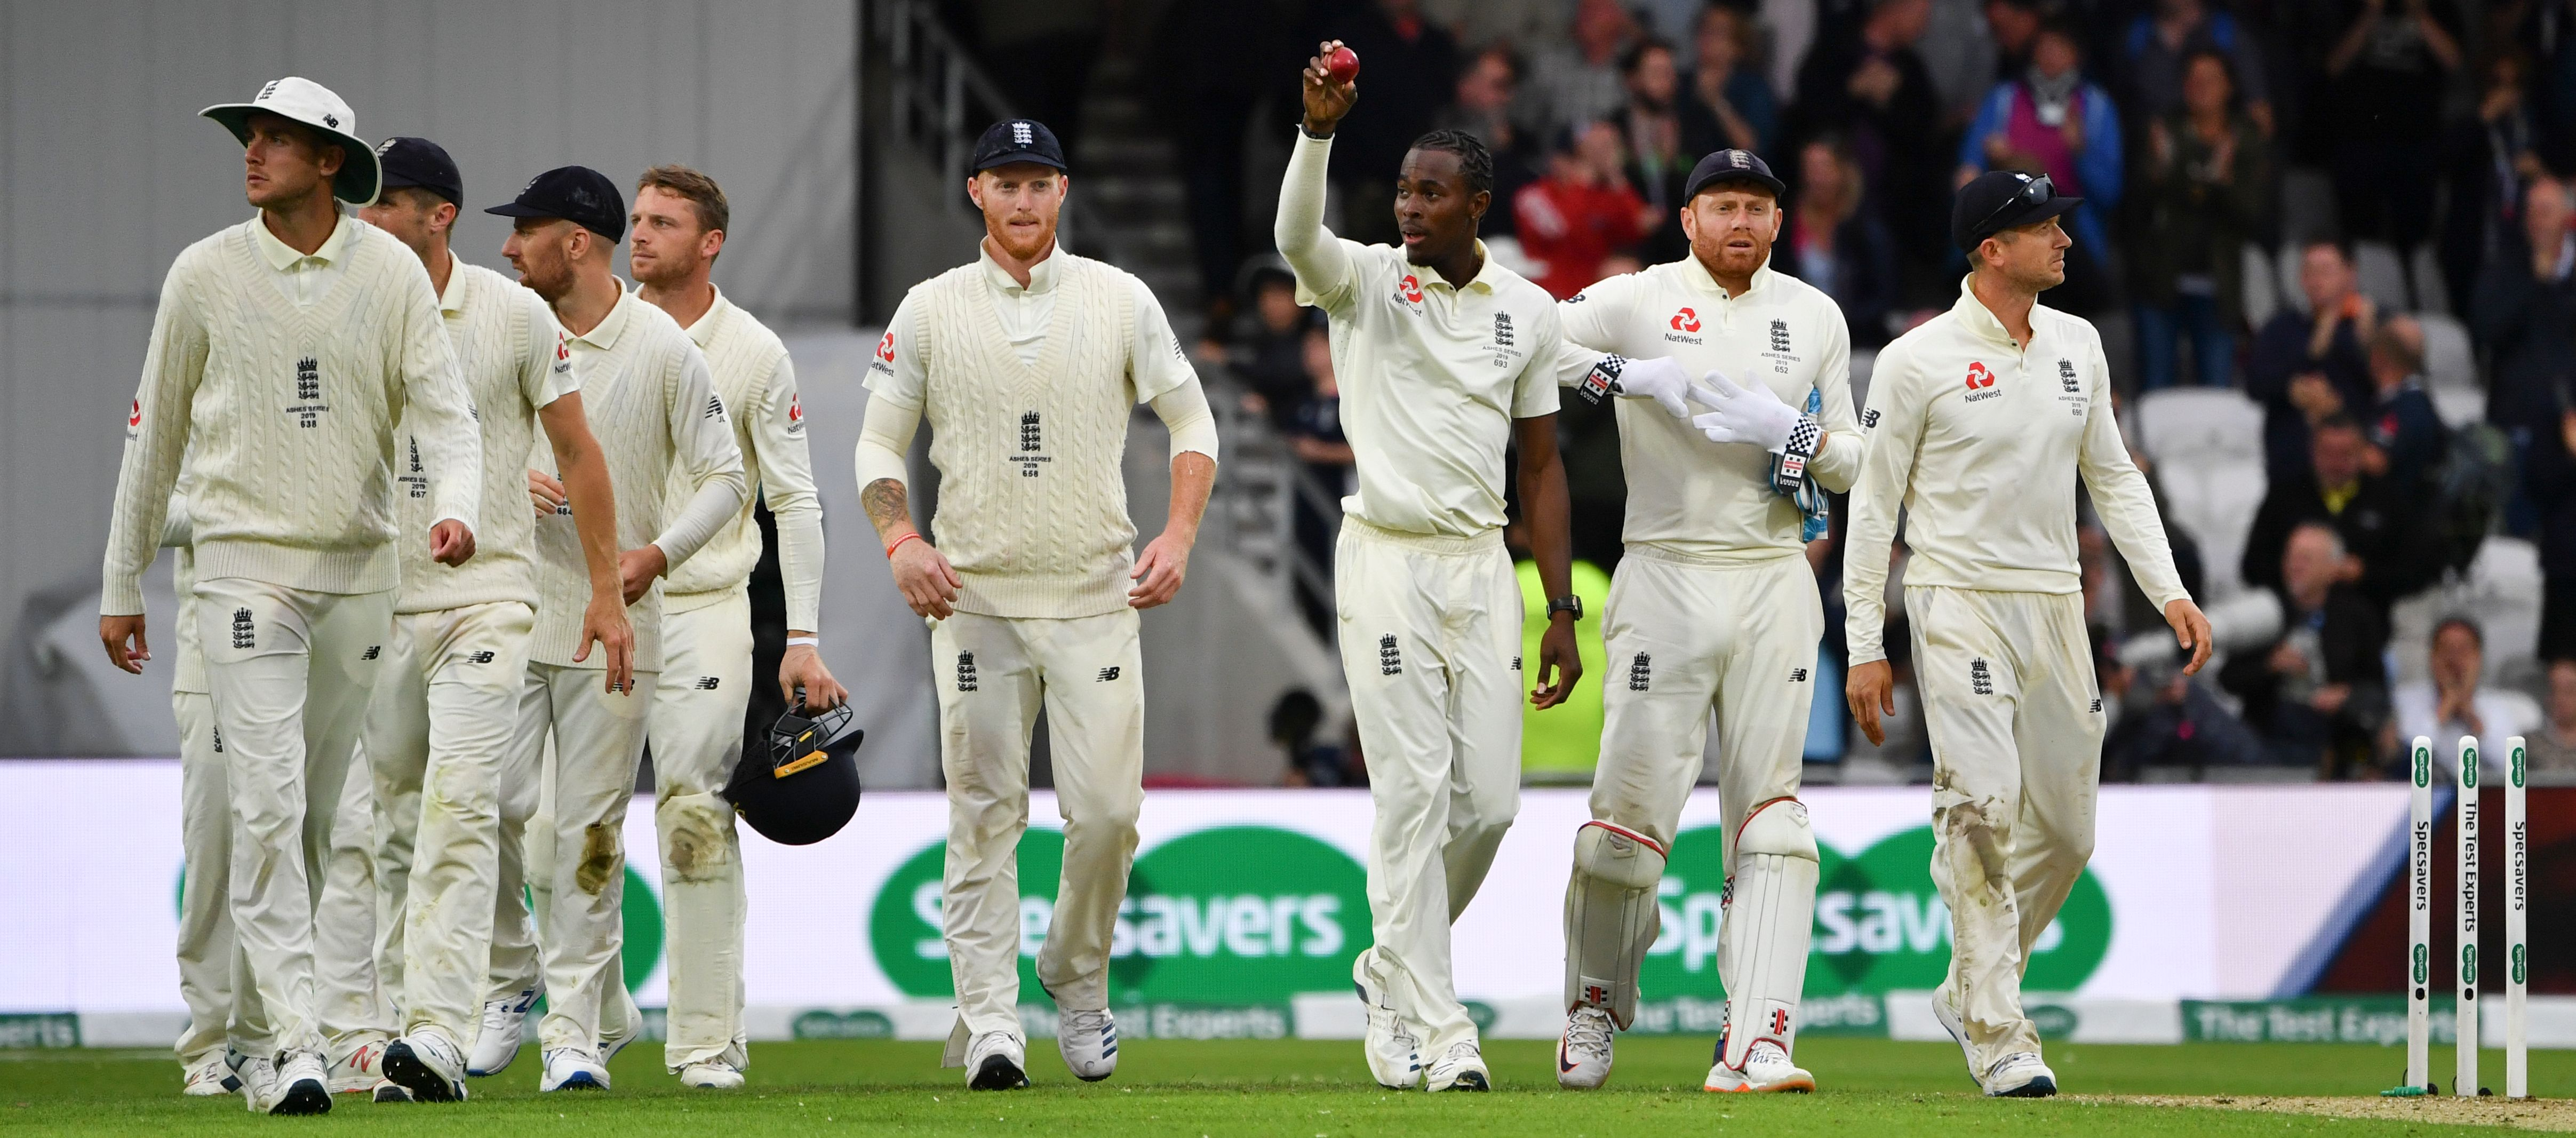 Archer 'over the moon' after devastating six-for